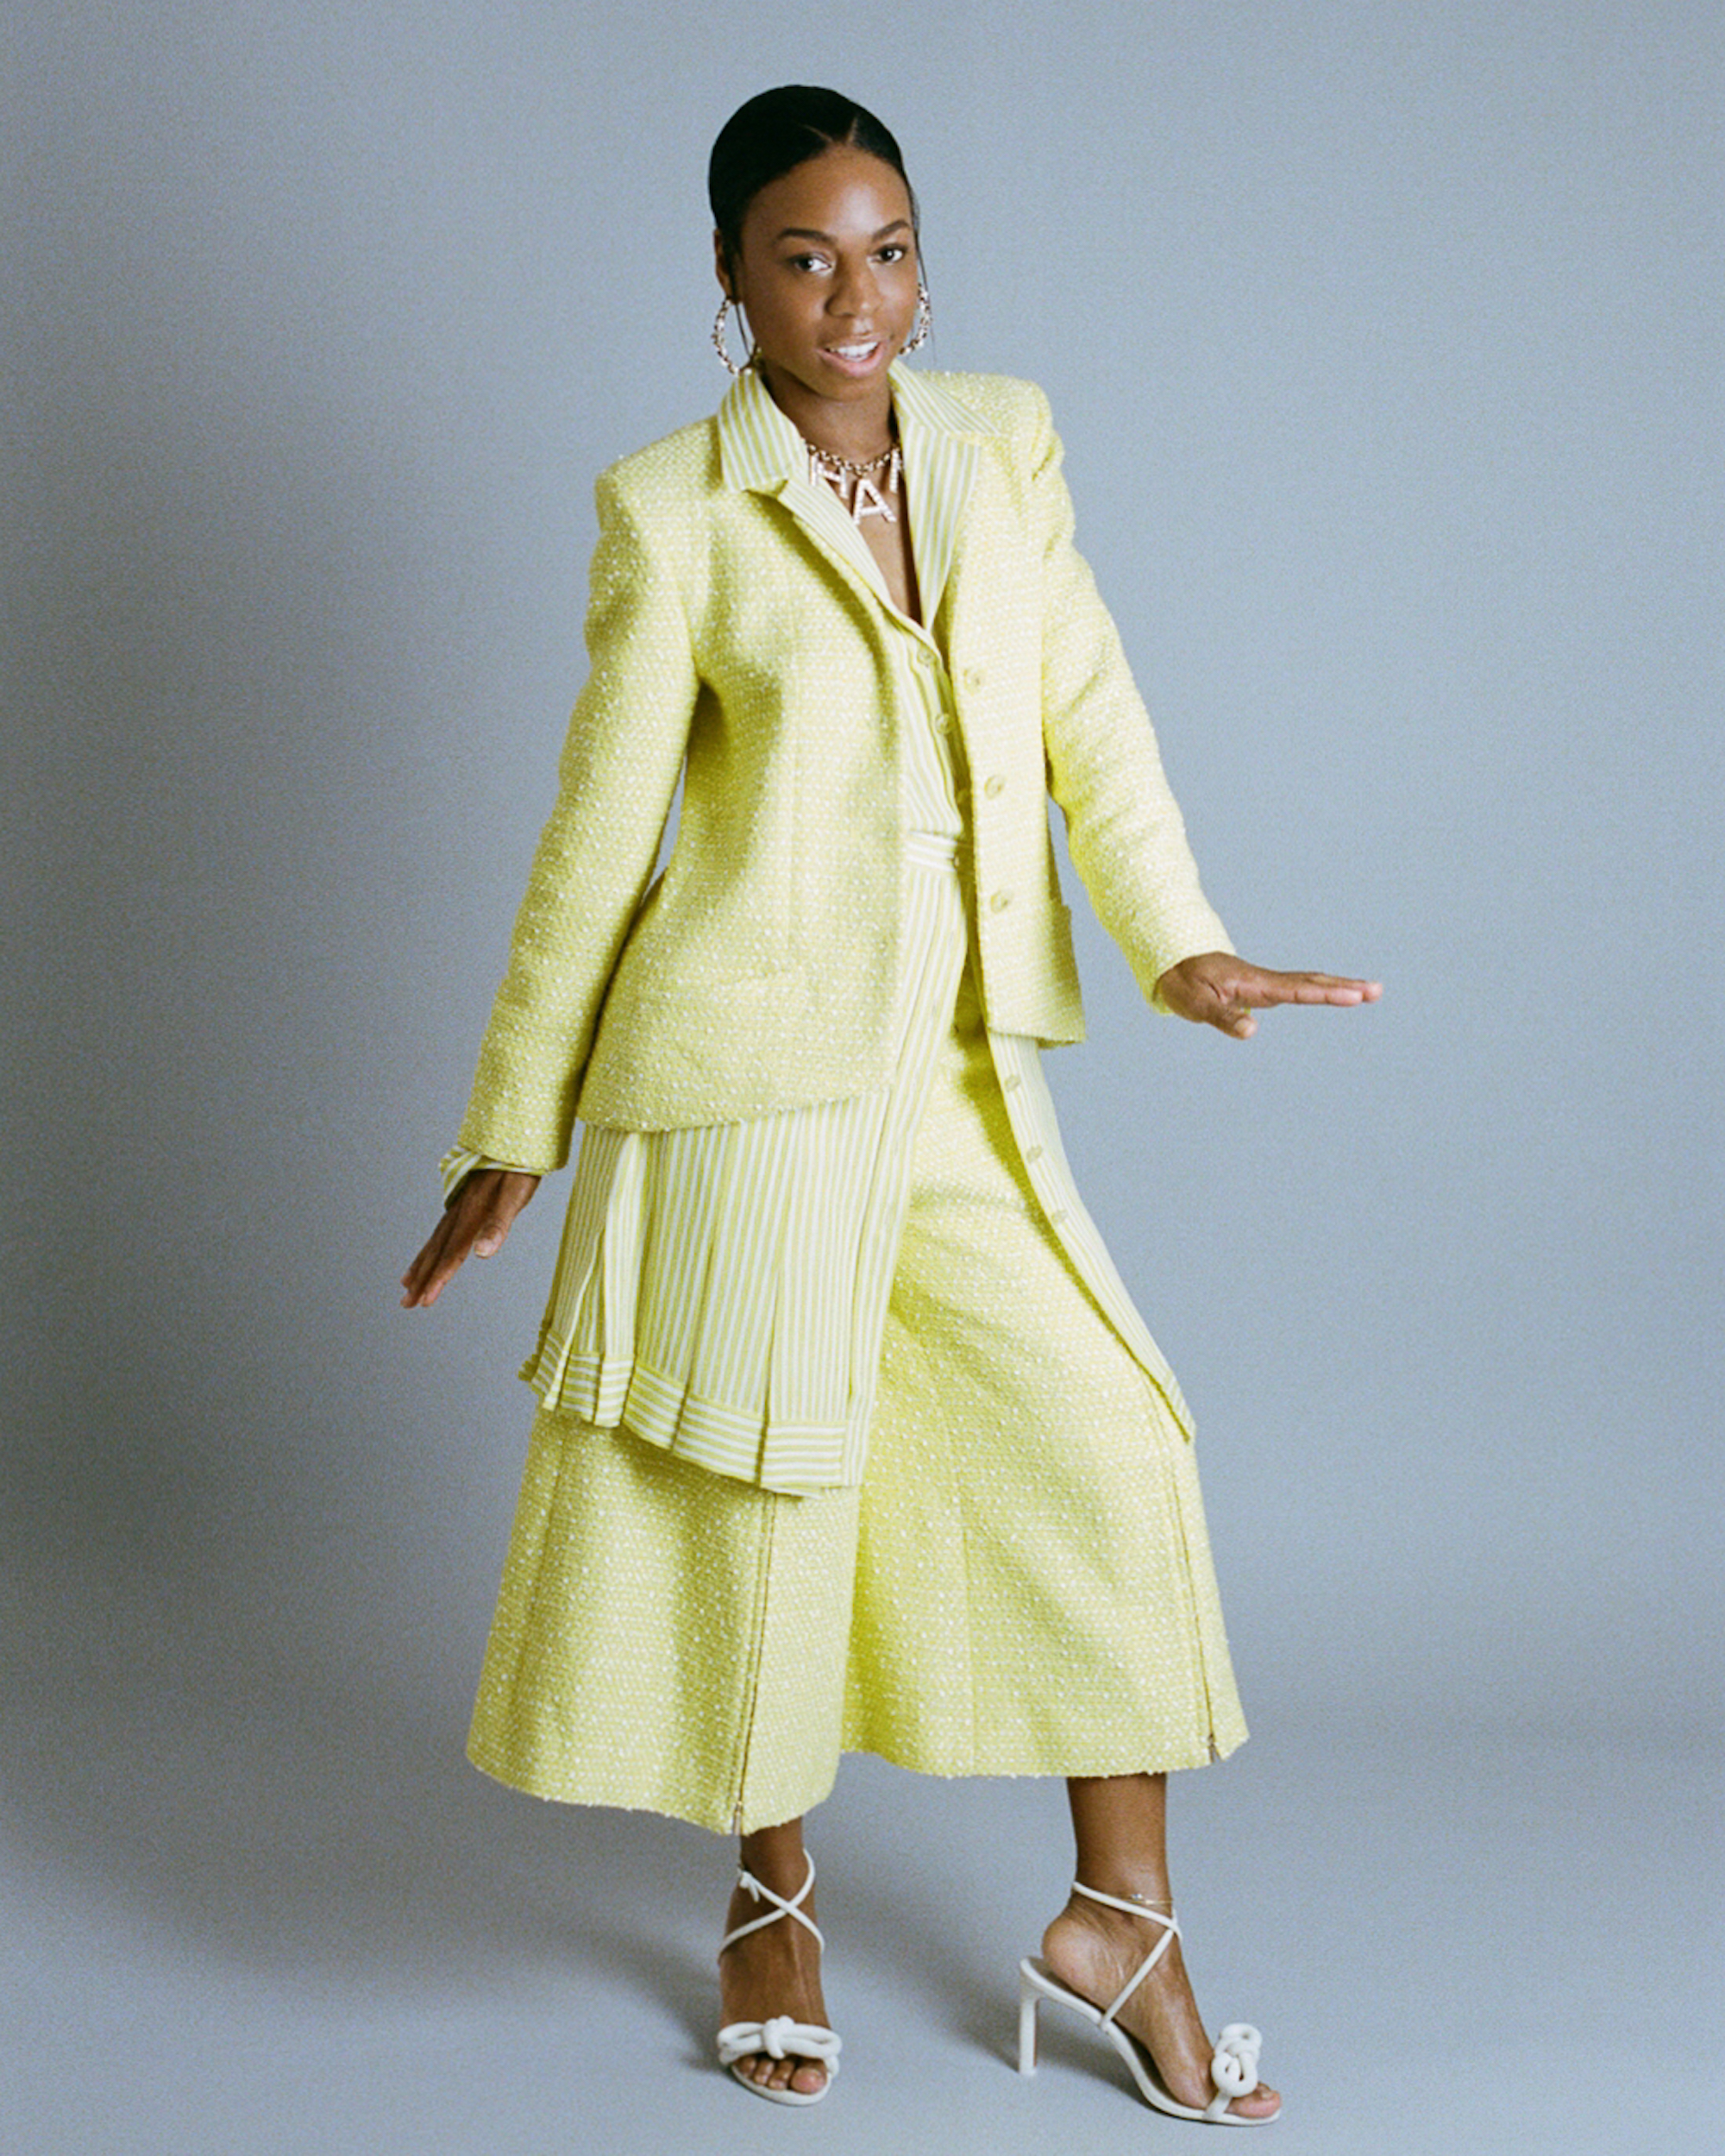 Pippa Bennett-Warner in yellow suit full-length dancing